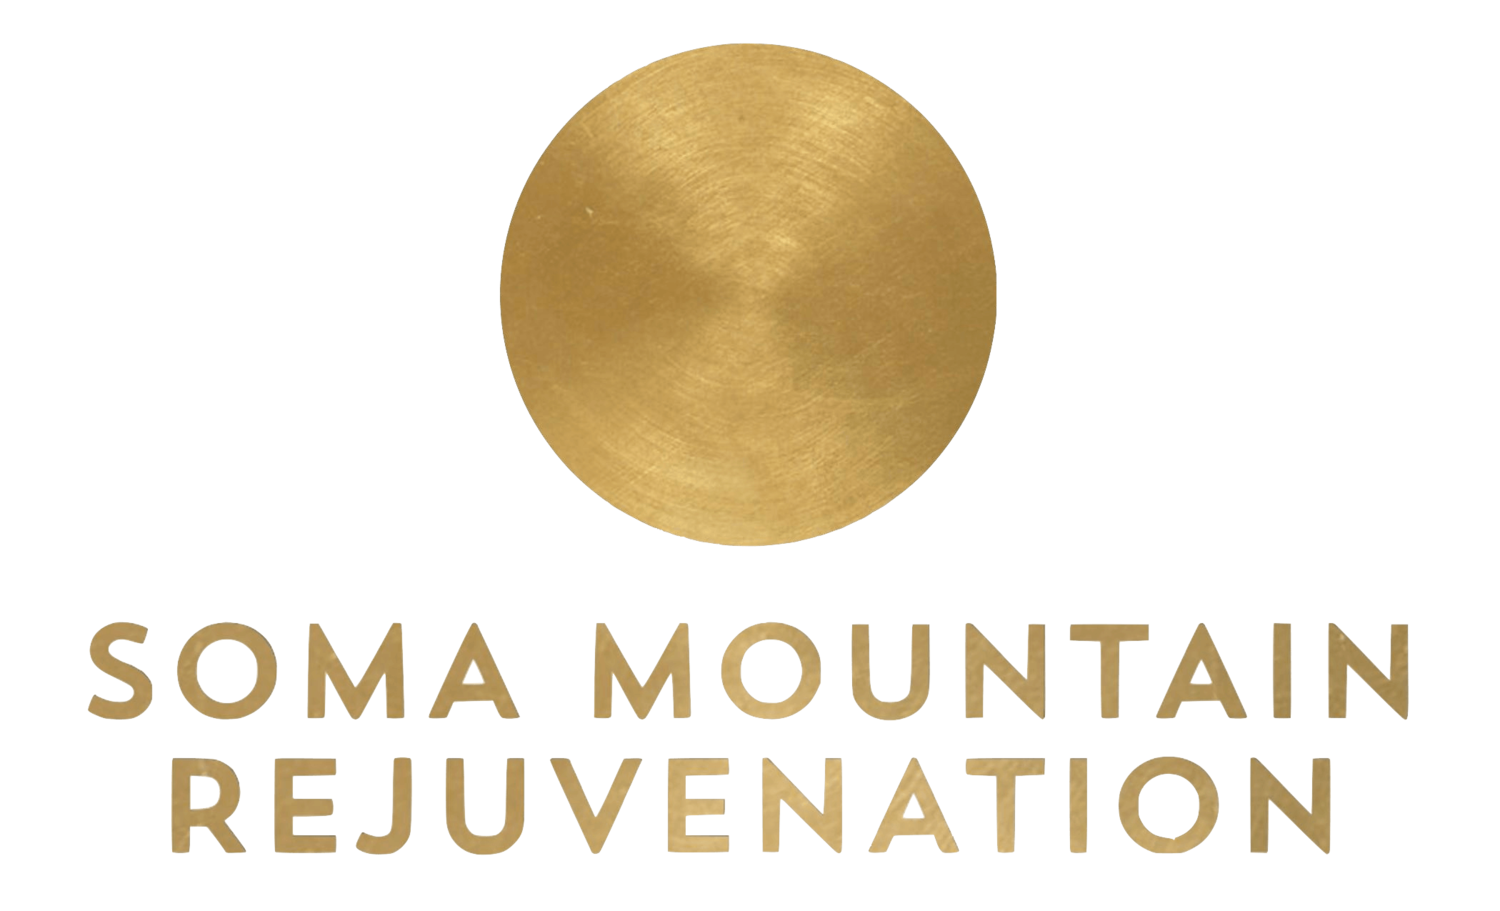 Soma Mountain Rejuvenation